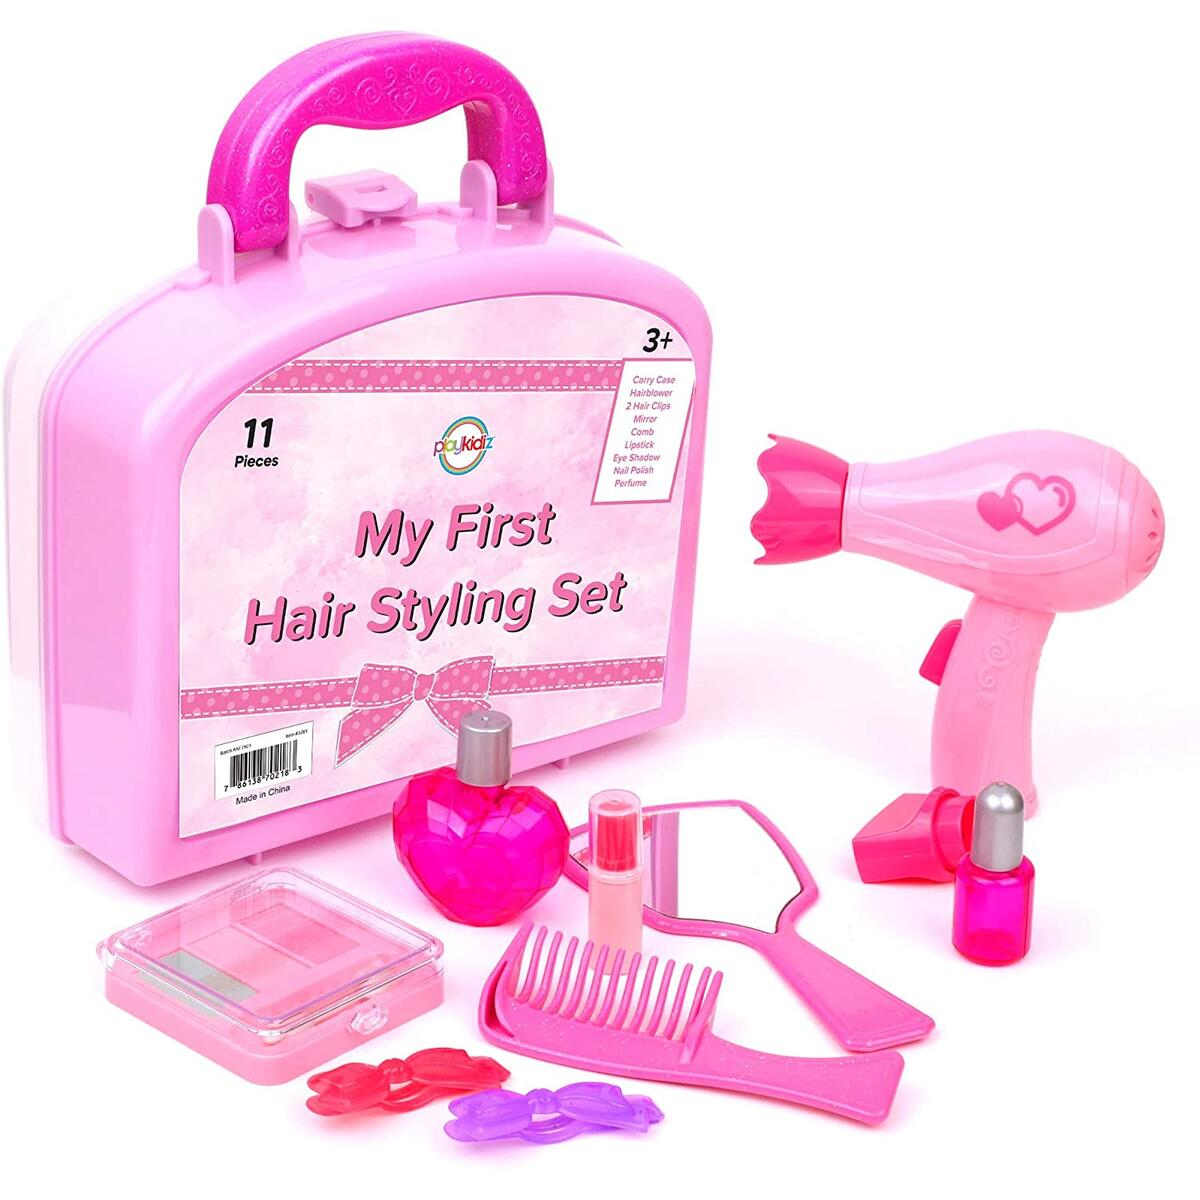 Playkidz My First Hair Styling Set - Children's 11 Pcs Vanity Set - Perfect for Beauty Salon Pretend Play w/ Makeup and Hairdresser Tools, Recommended for Ages 3+